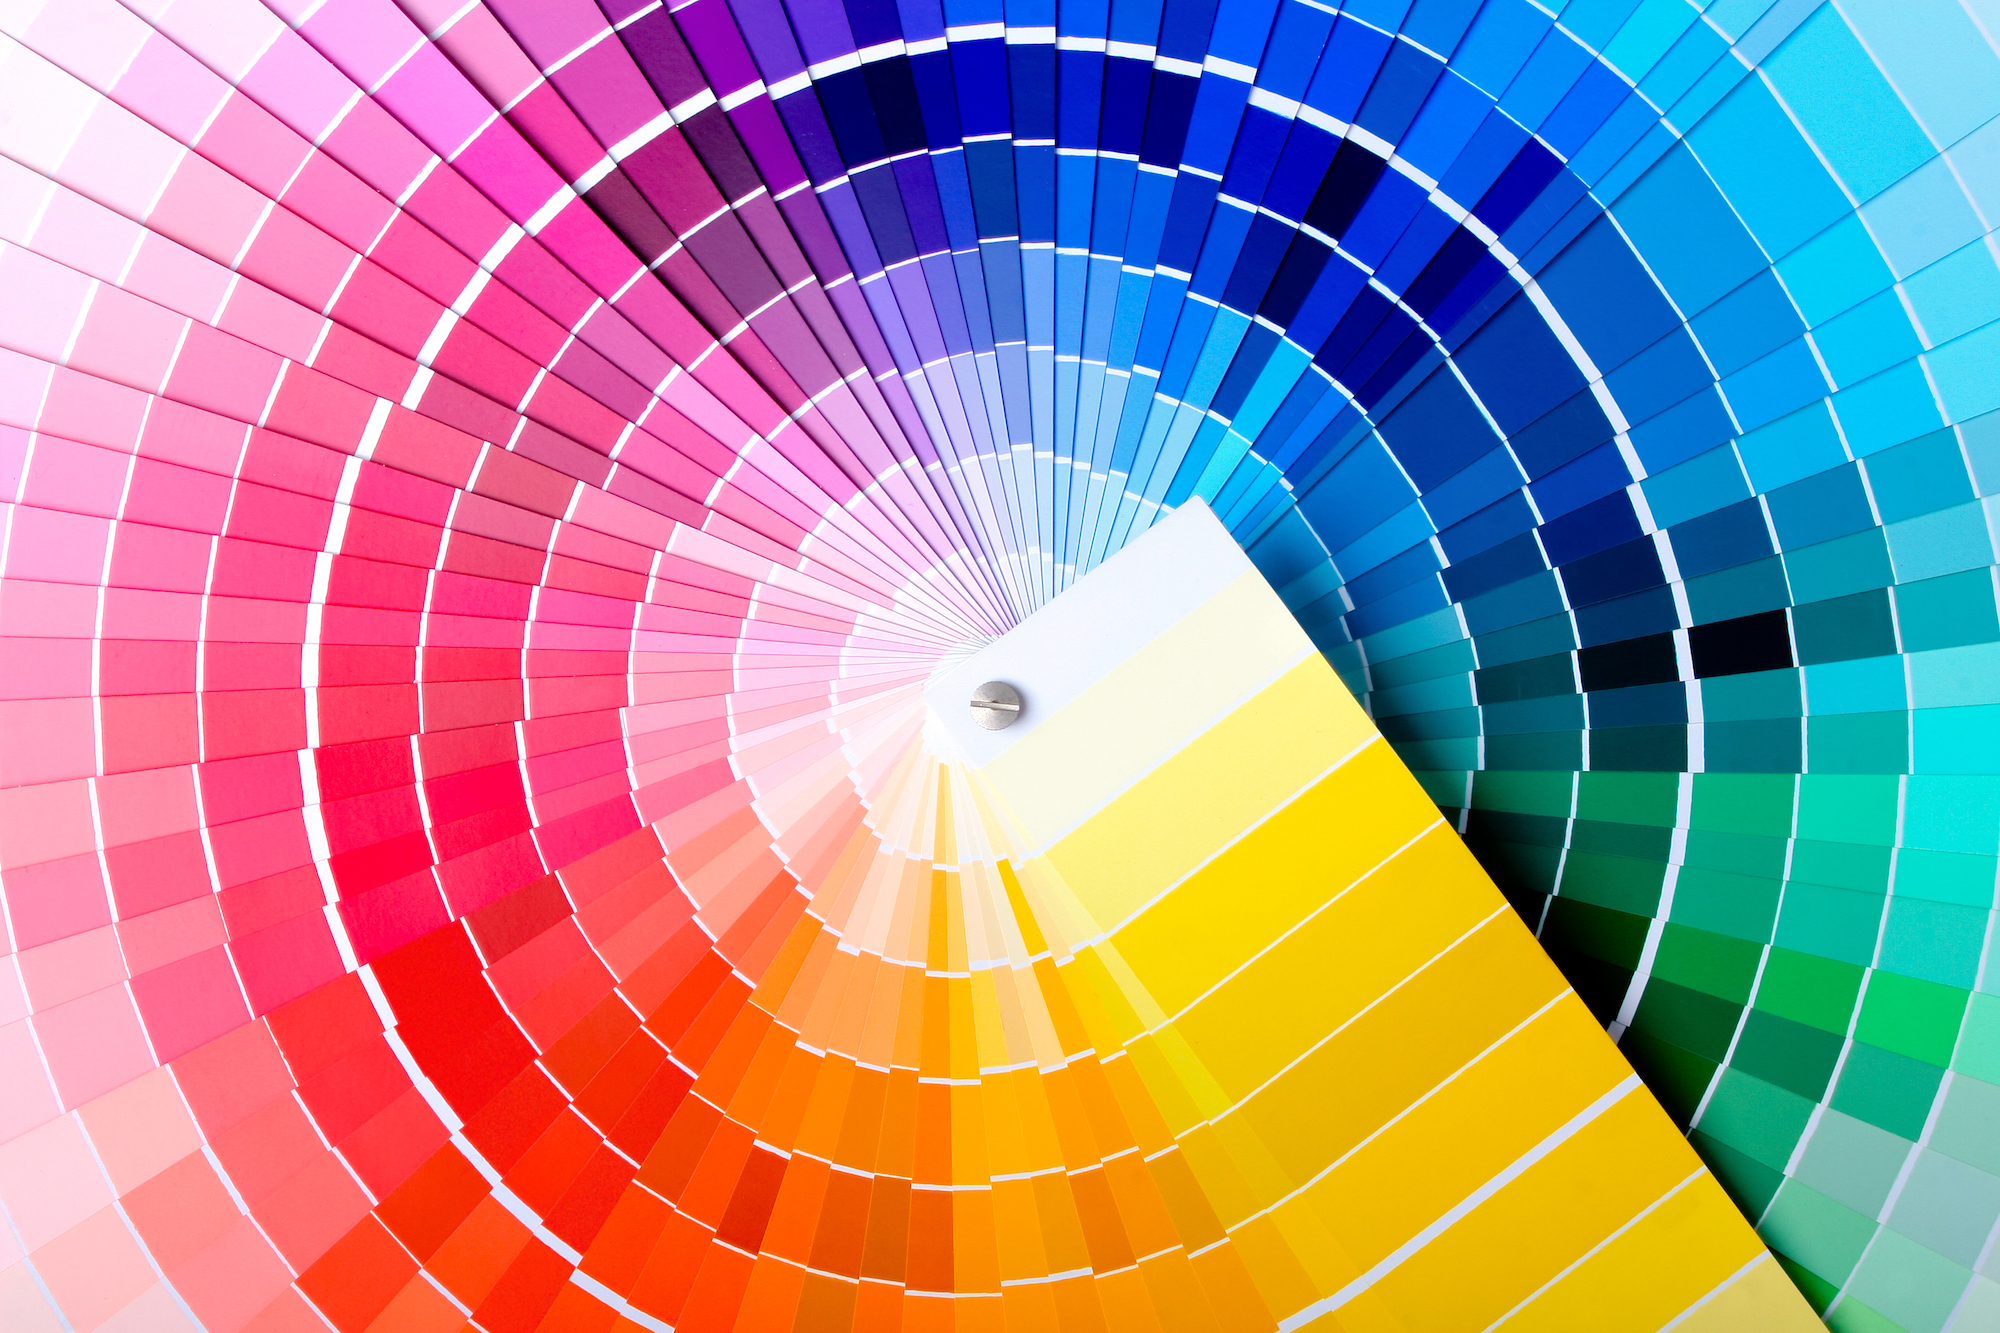 fanned out color sample sheets depicting a rainbow of shades